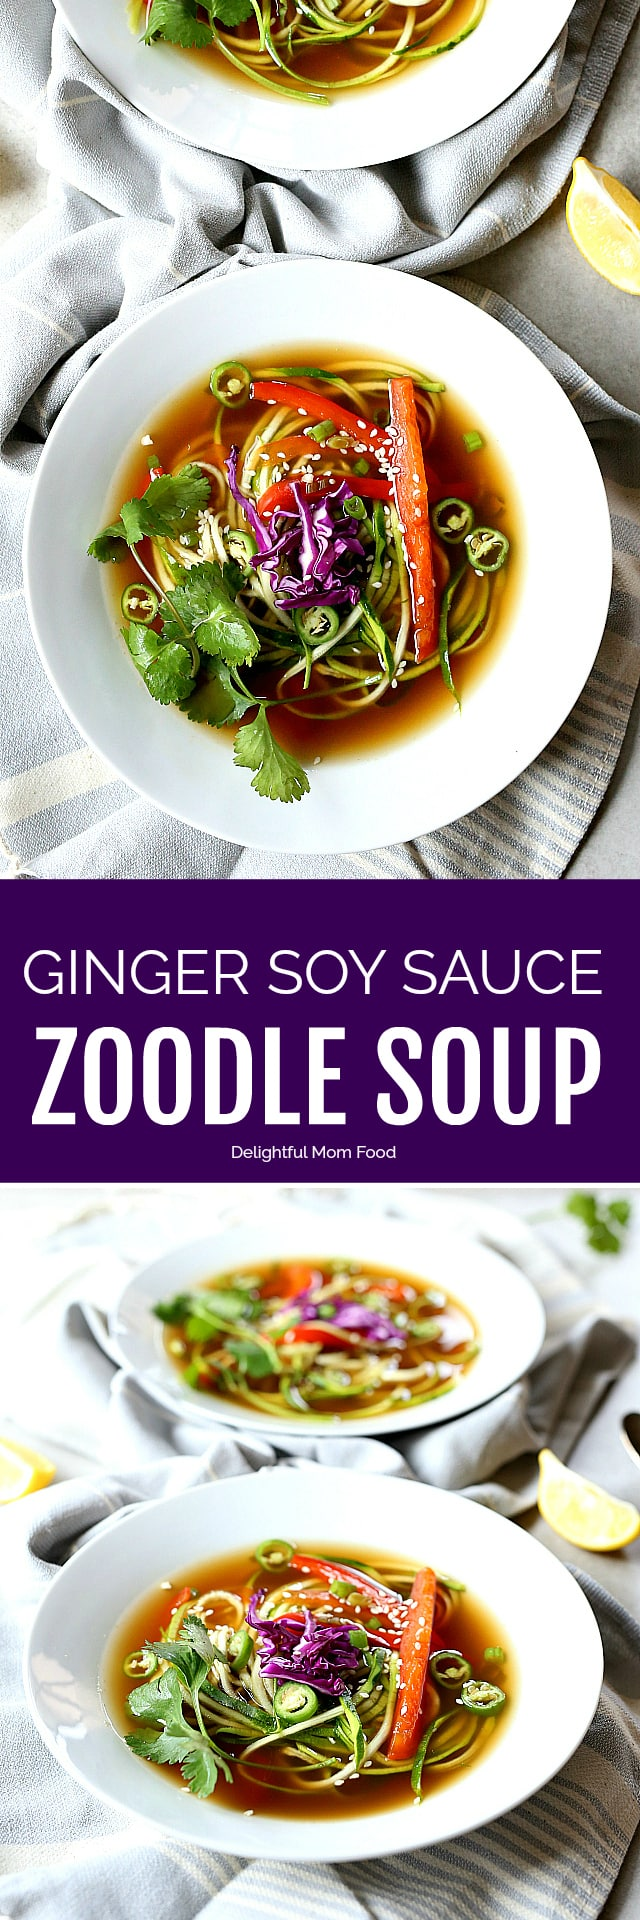 A spicy soy sauce-based ginger soup broth with sweet red bell peppers, green onions, zoodles and jalapenos. A household favorite grain free vegetarian zucchini soup recipe in 30 minutes!